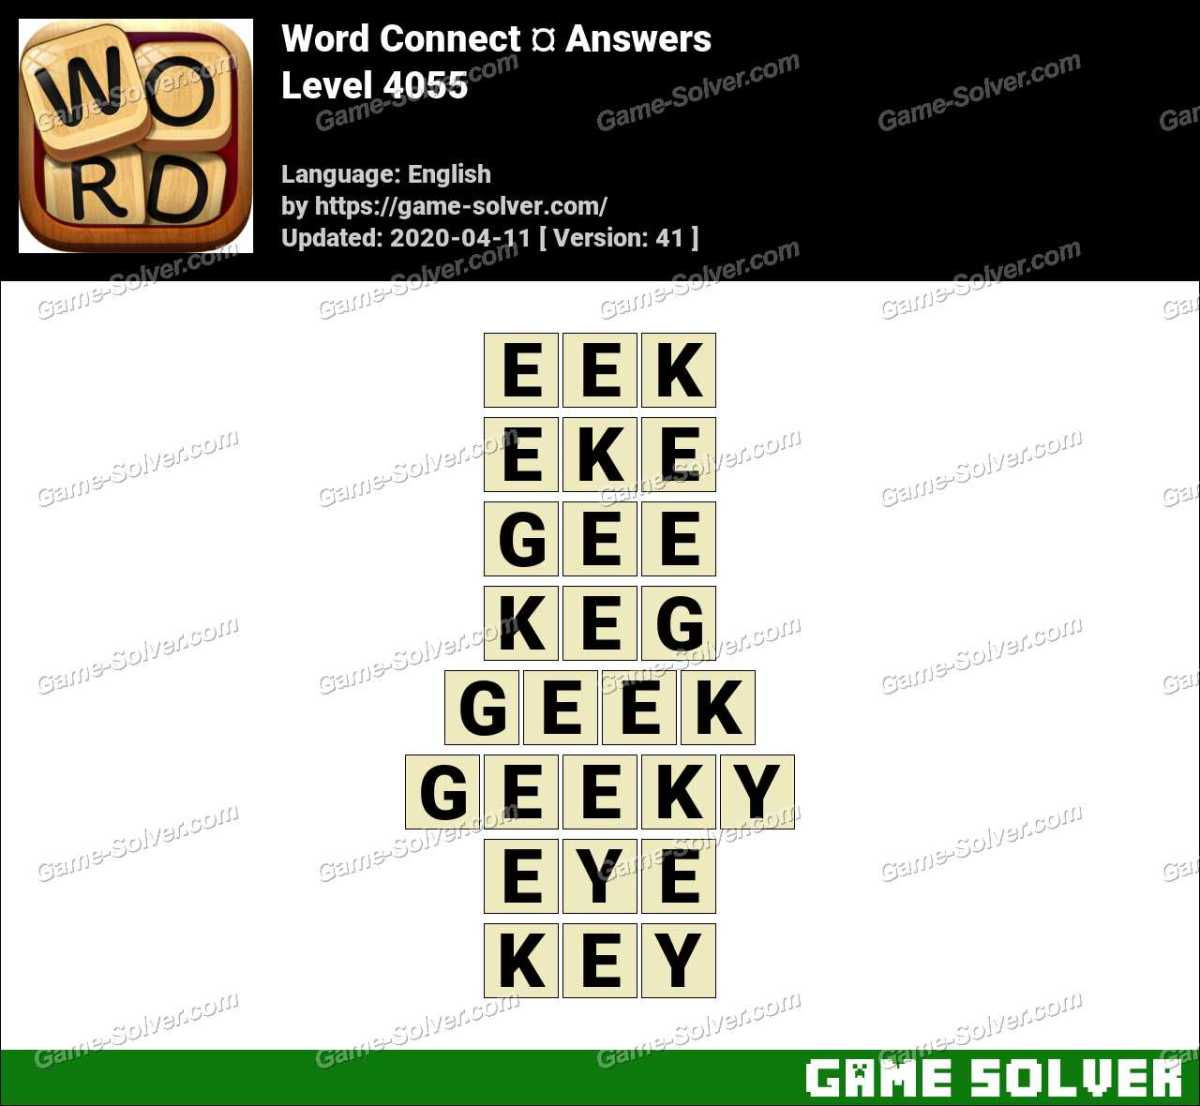 Word Connect Level 4055 Answers